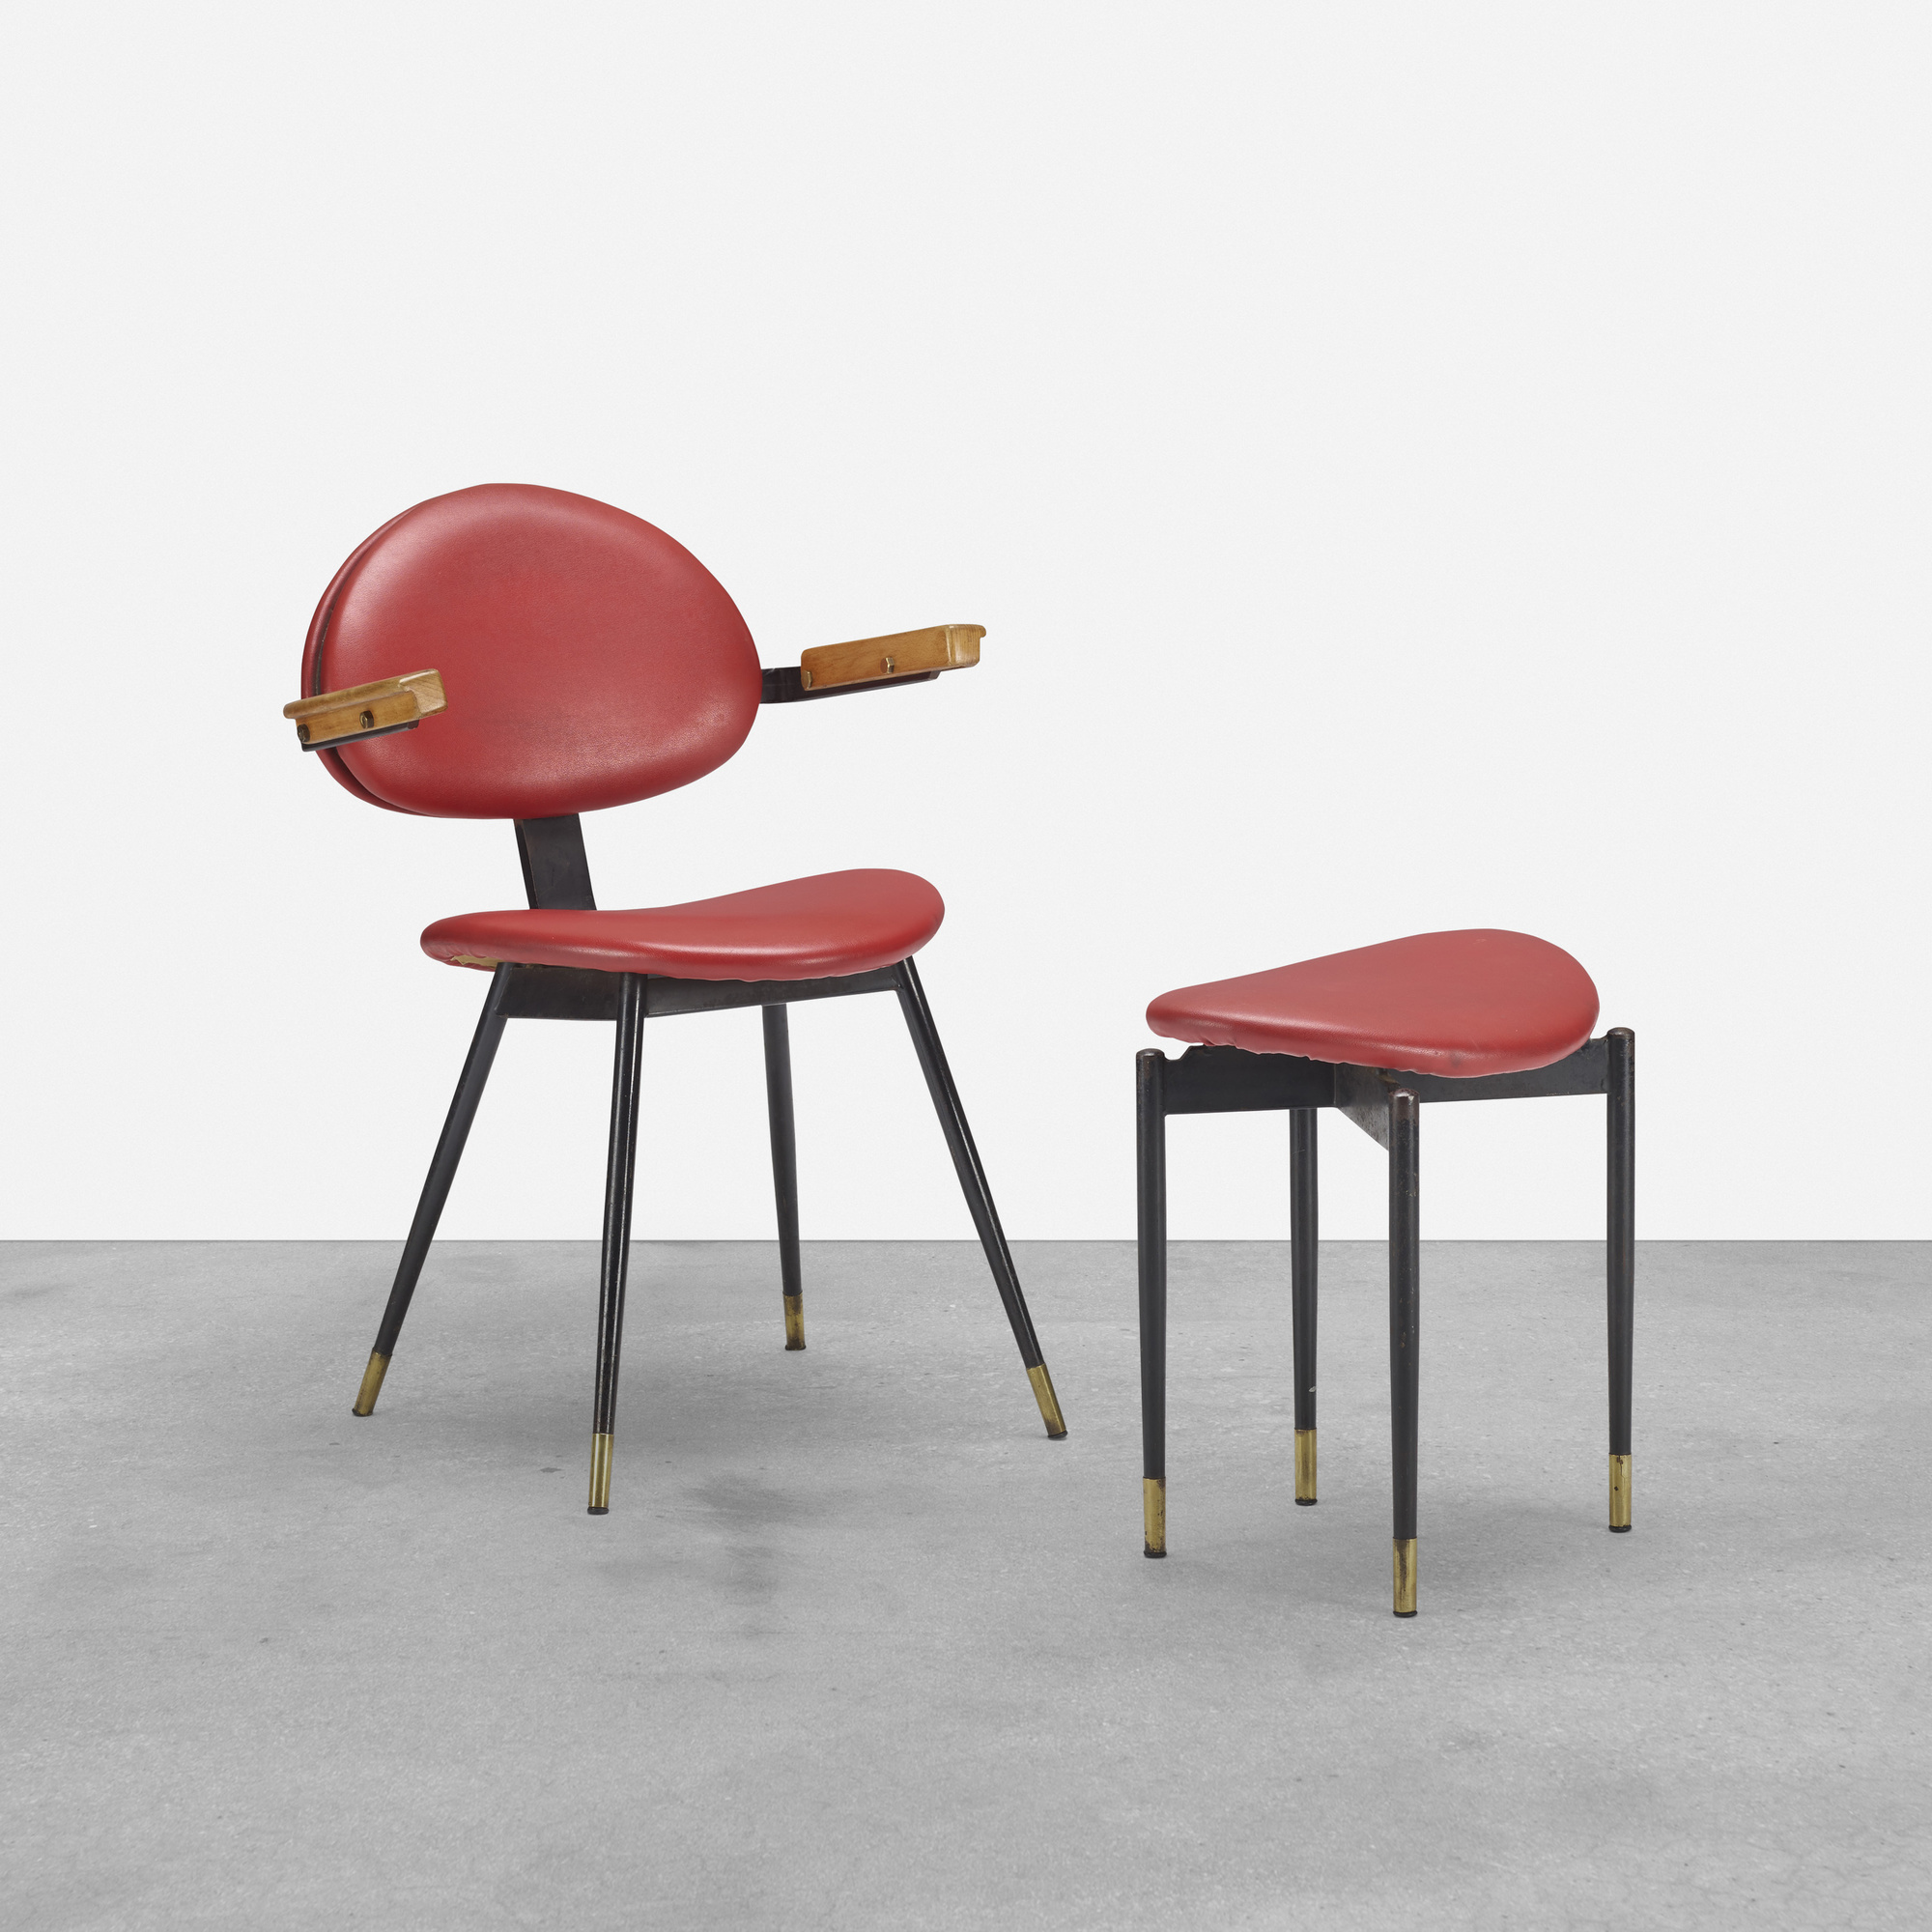 216: Carlo Mollino / chair and ottoman from Lutrario Hall, Turin (1 of 1)